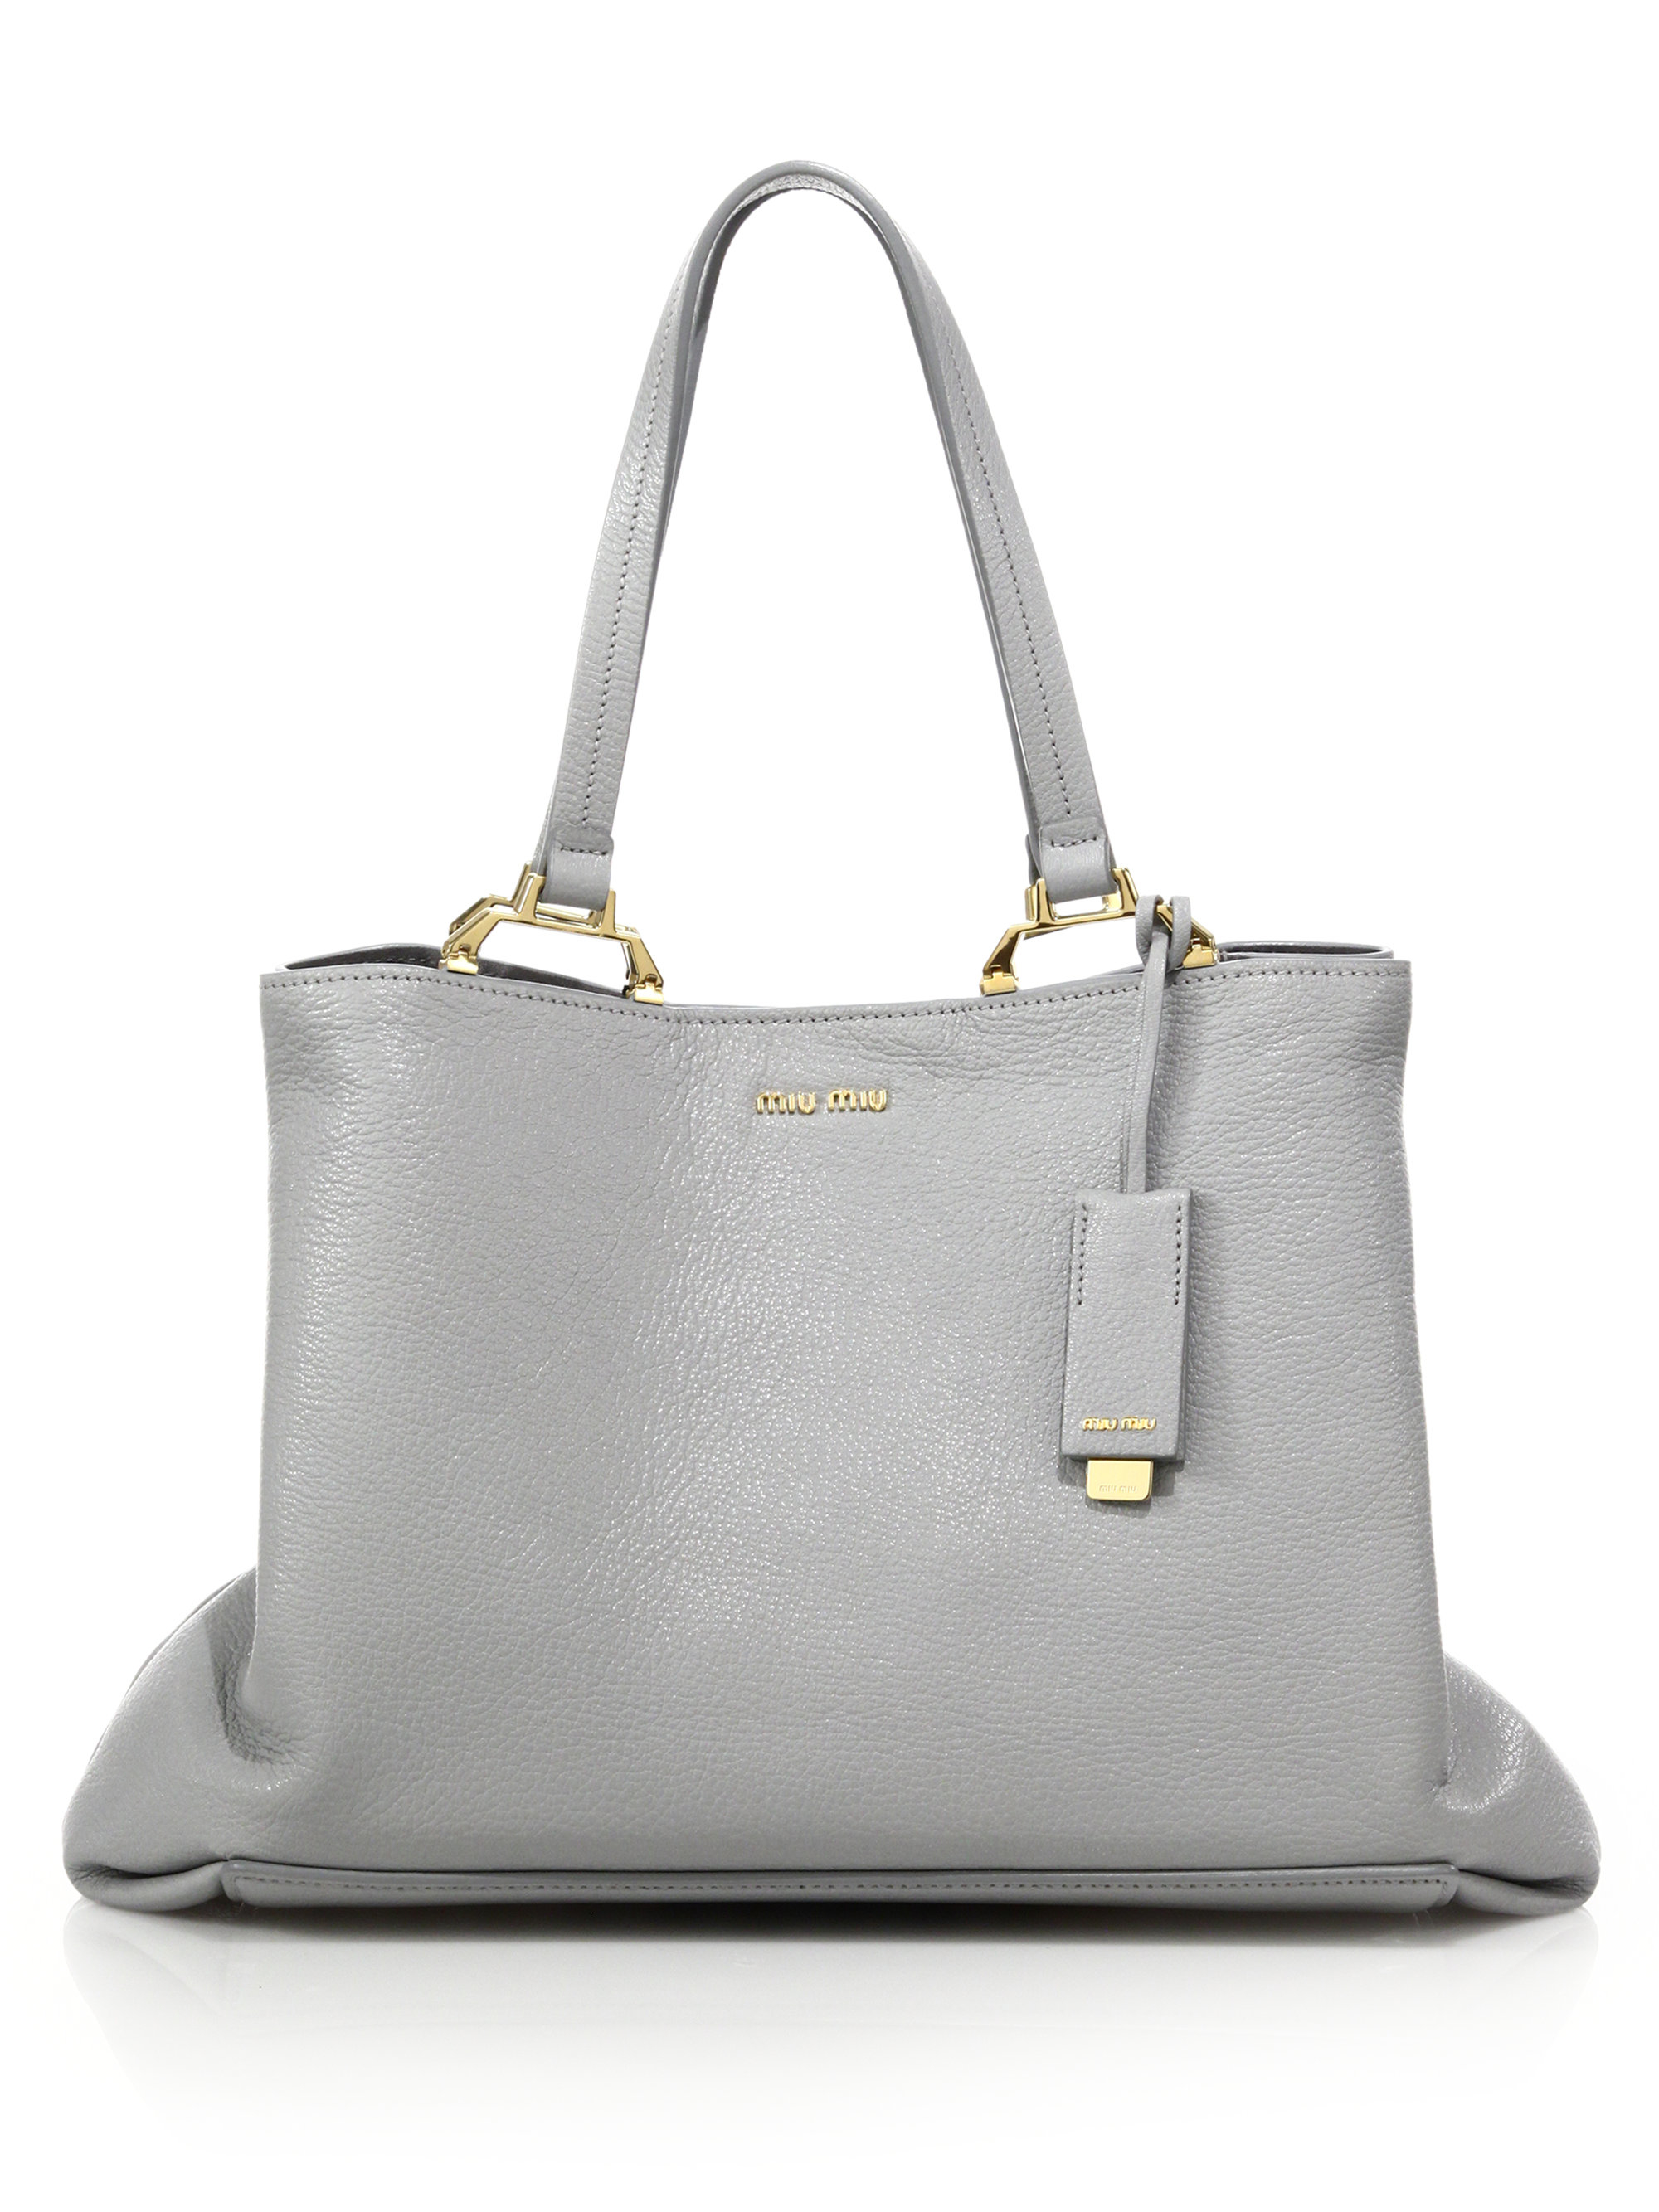 d074a69920be Lyst - Miu Miu Madras Leather Tote in Gray